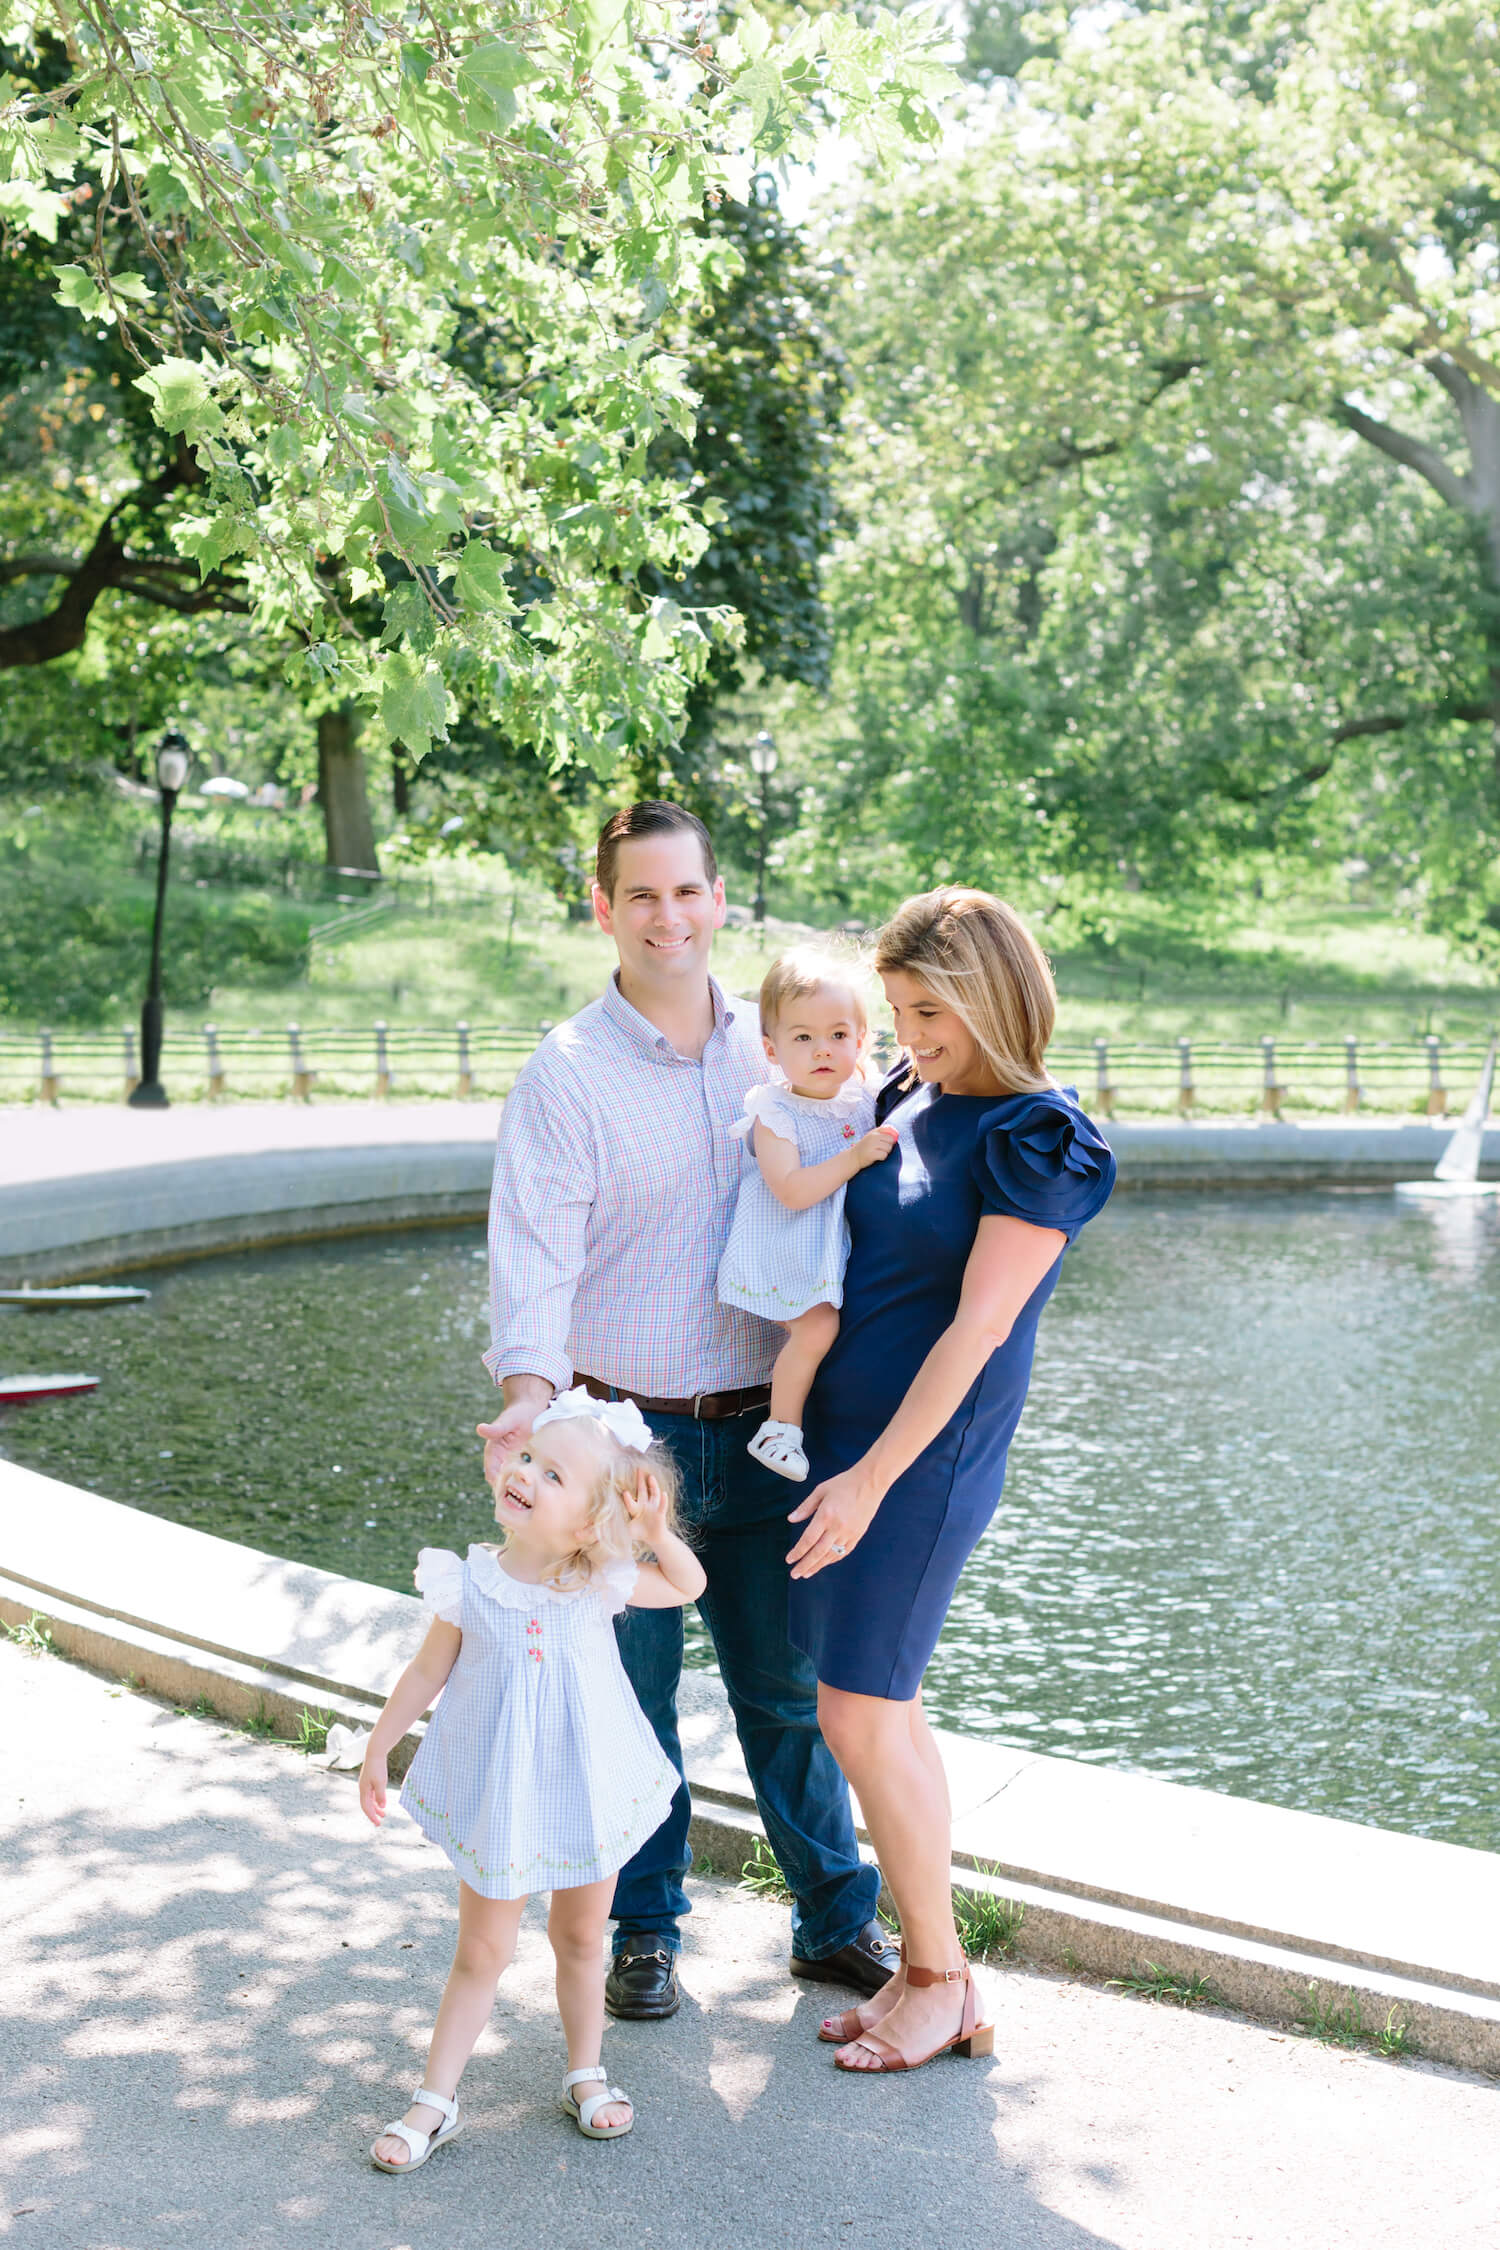 New York Family Photographer, Jacqueline Clair Photography features their latest family session in Central Park